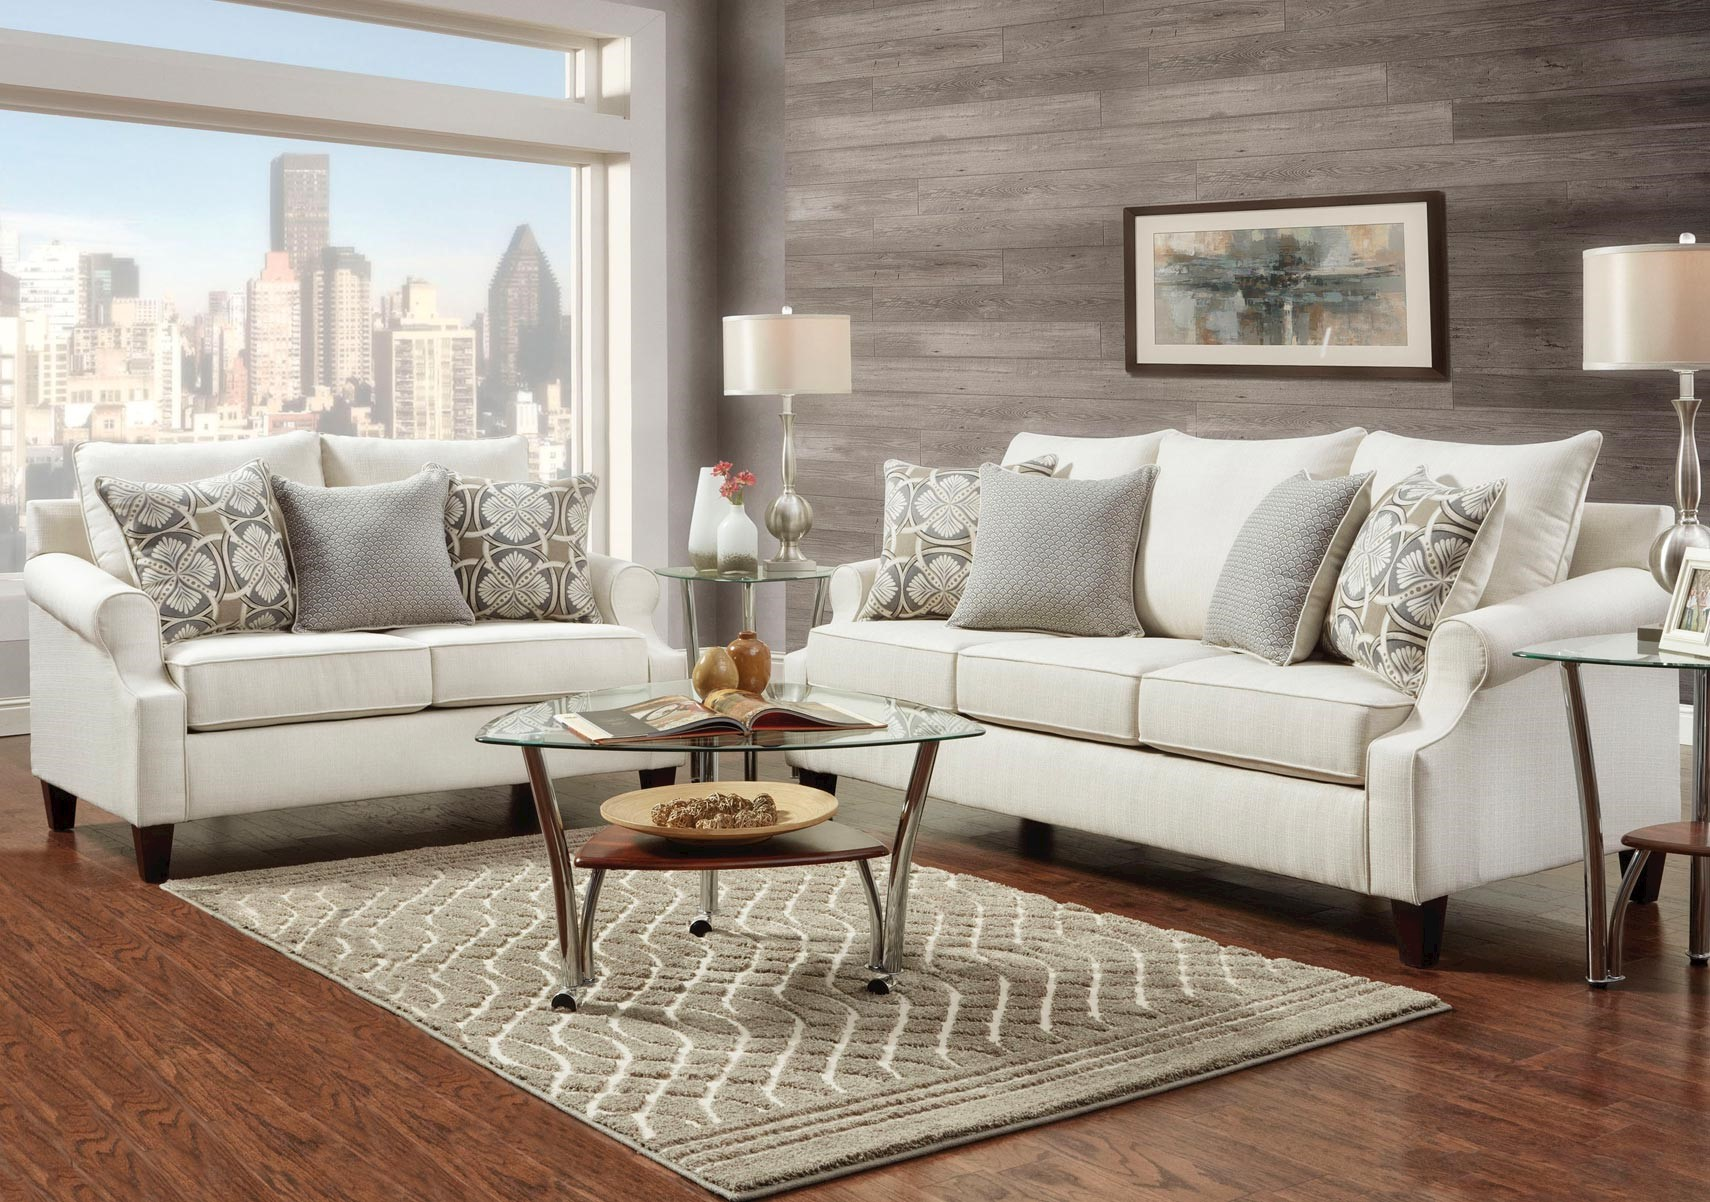 Lacks | Harper 2-Pc Living Room Set